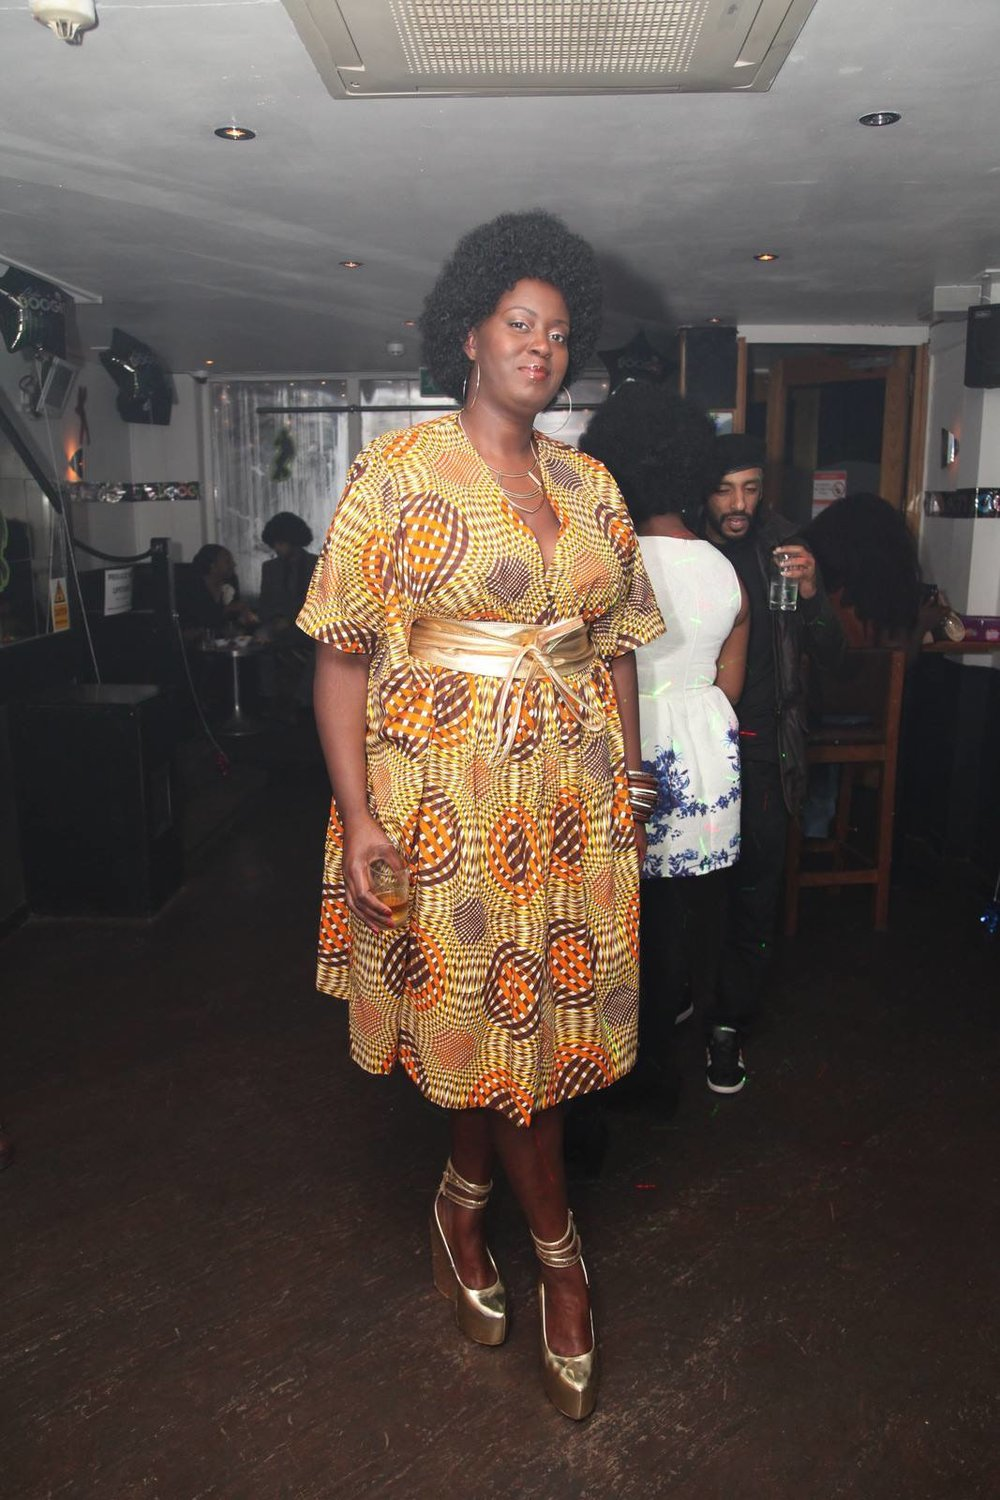 70s style Bespoke Kaftan dress: Reddskin UK. Gold leather Obi belt: Love YaaYaa. Black Girl Magic: Models own.